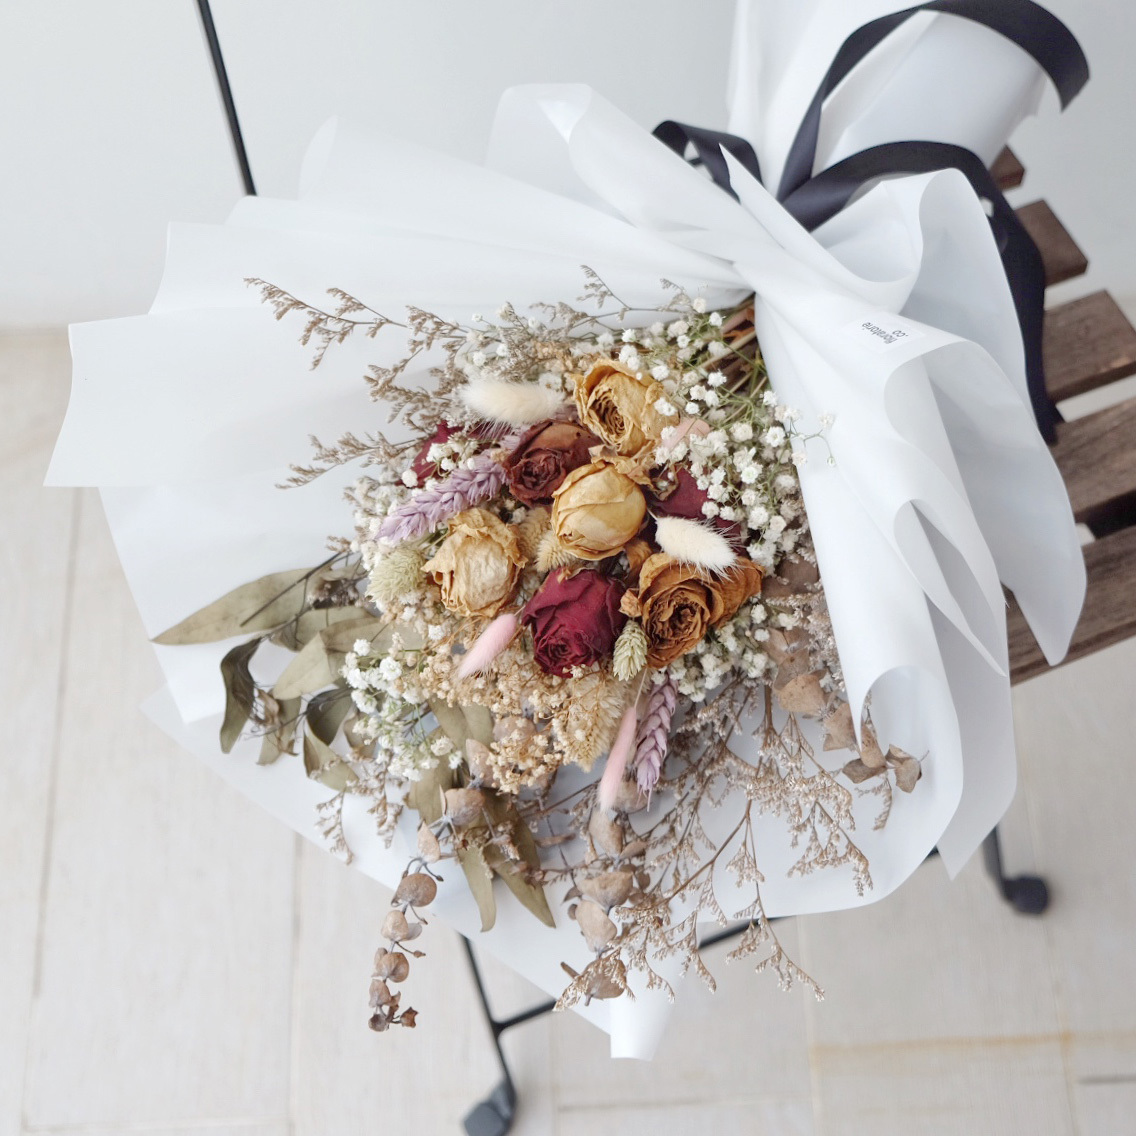 Rustic dried flower bouquet floratorie singapore online florist rustic dried flower bouquet izmirmasajfo